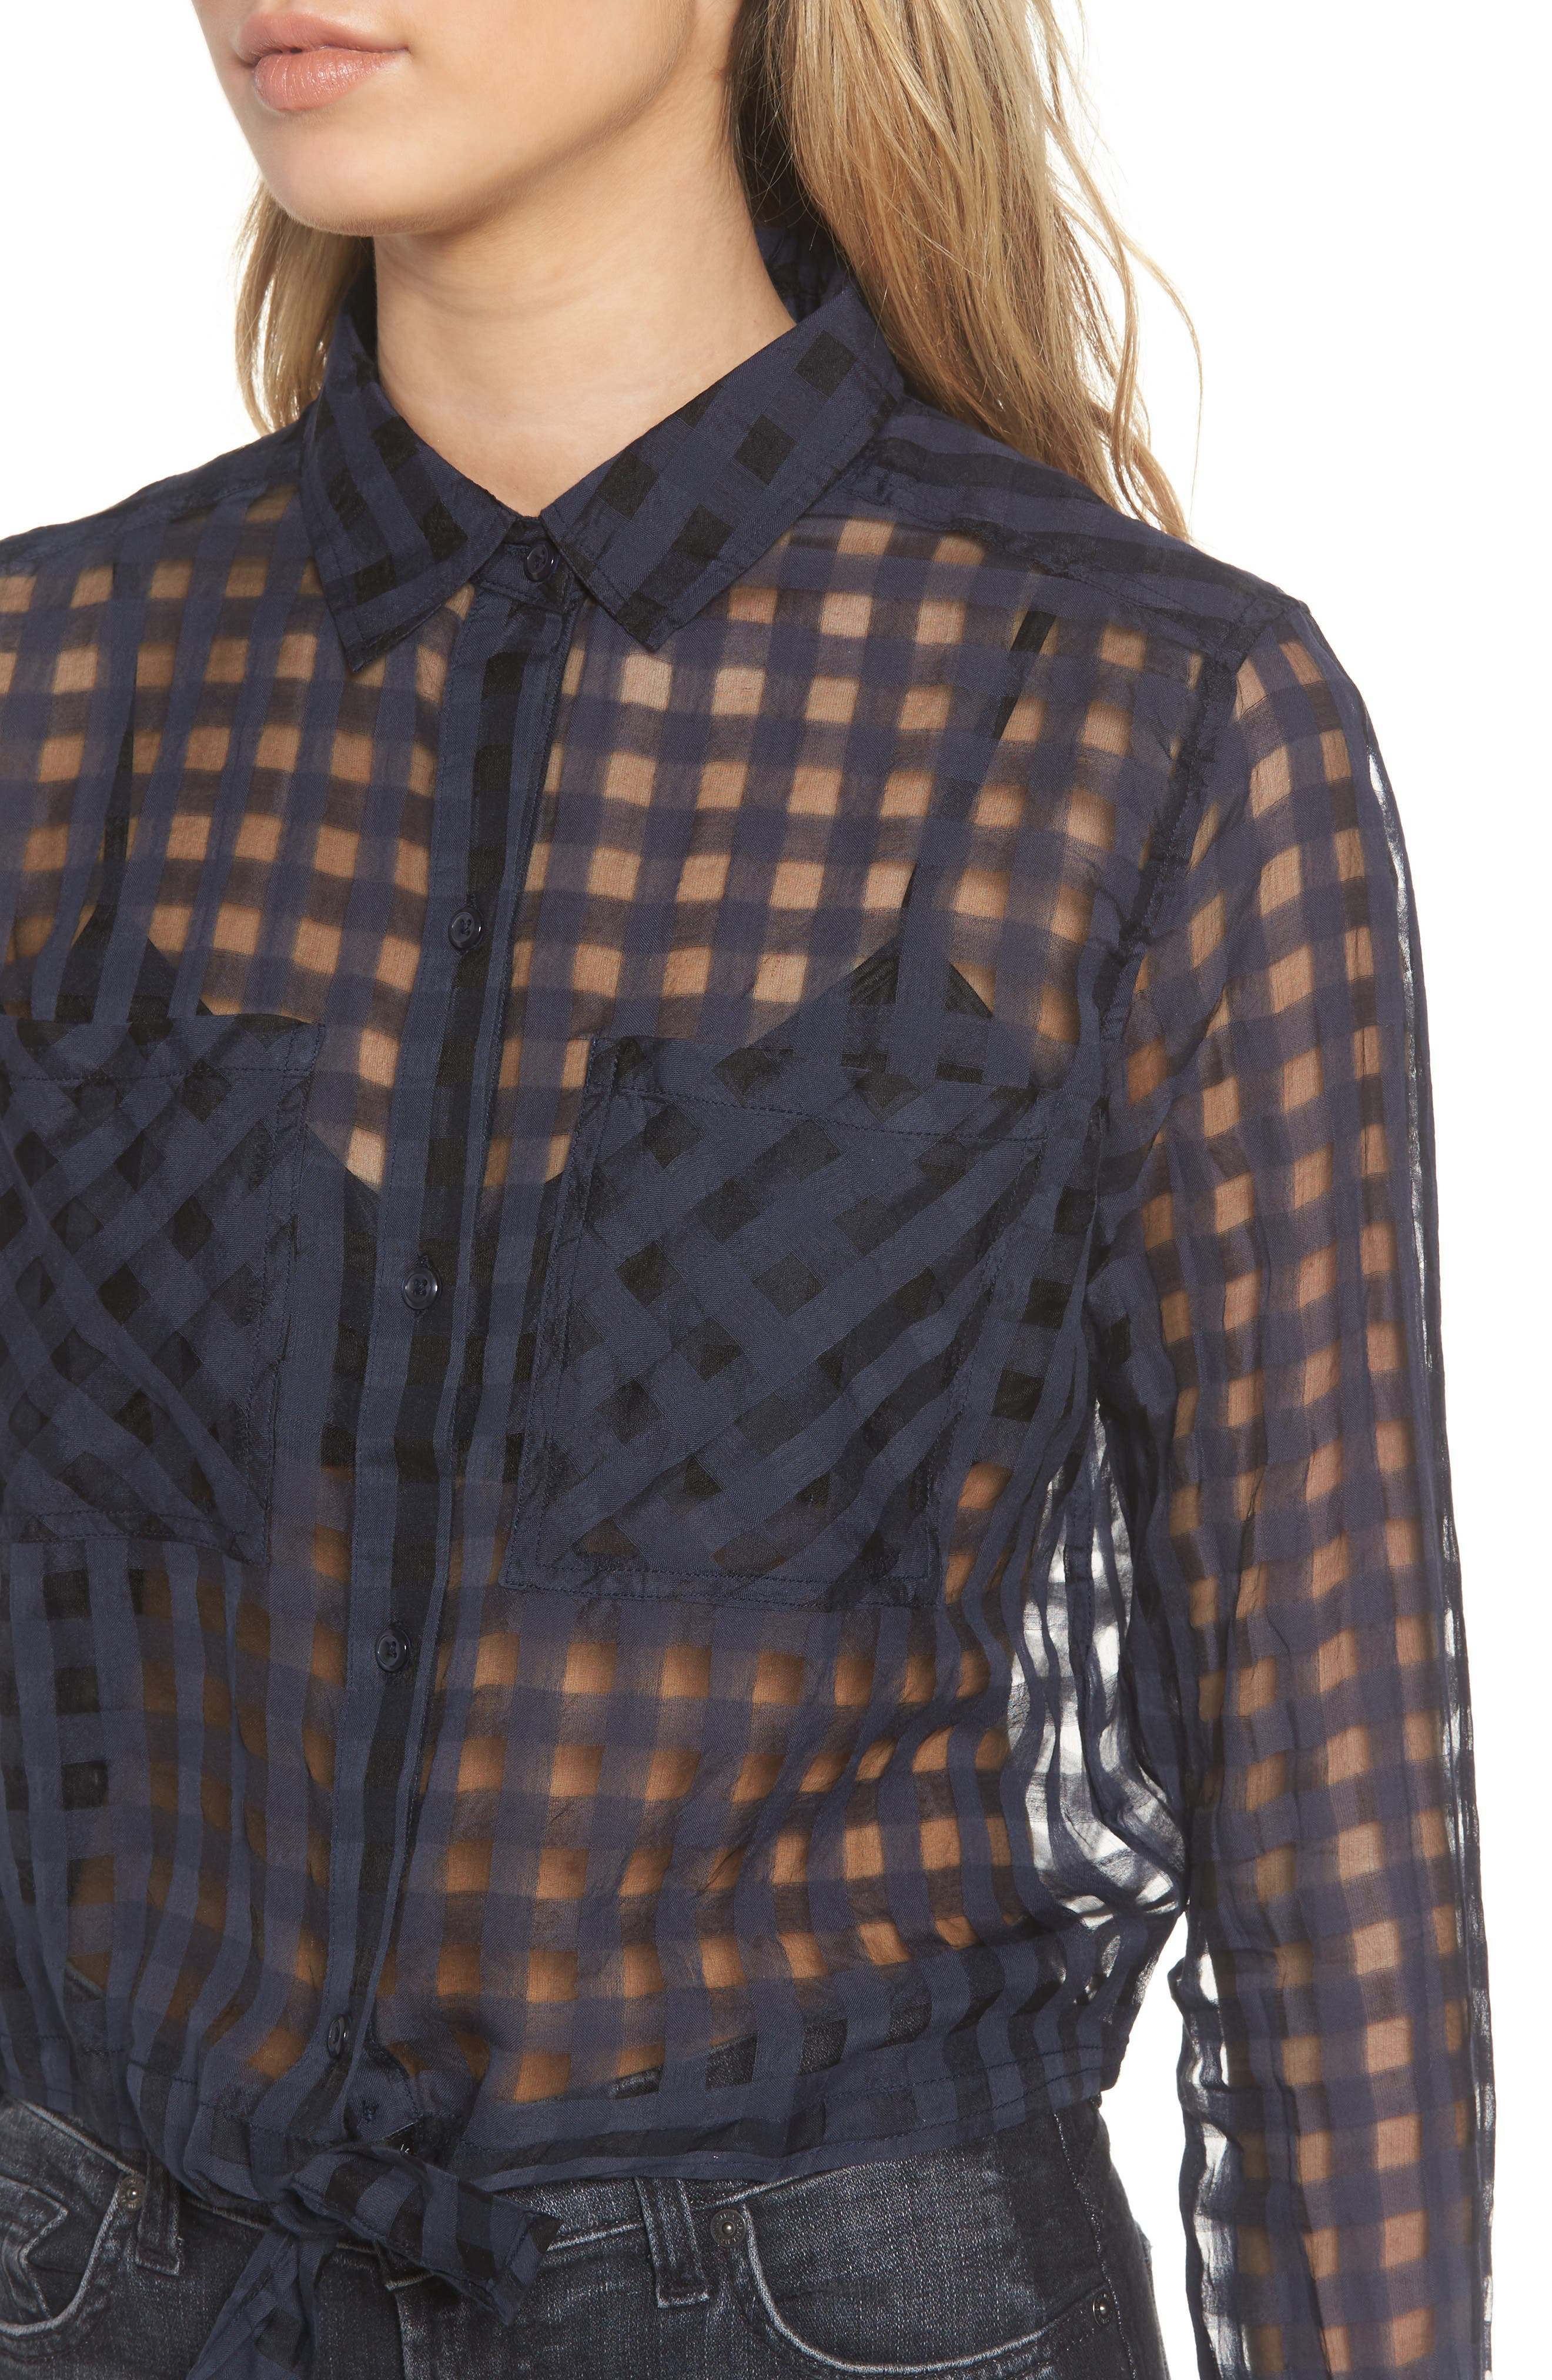 Kelsey Sheer Tie Front Shirt,                             Alternate thumbnail 4, color,                             Midnight Shadow Check